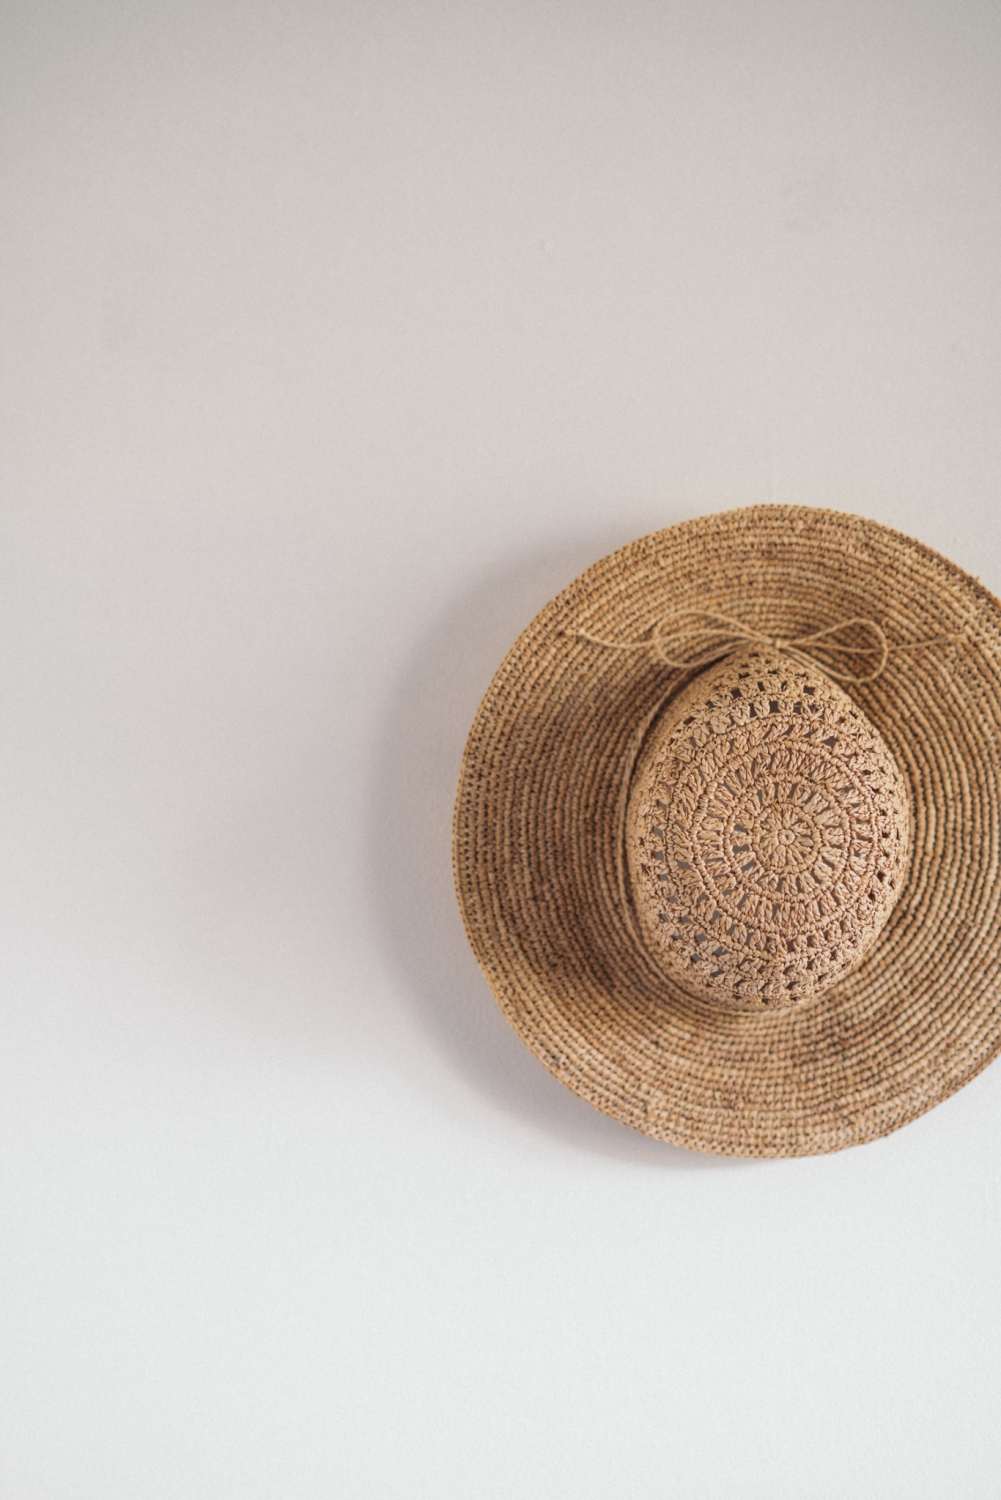 Hats for Spring and Summer 1 3 scaled 2